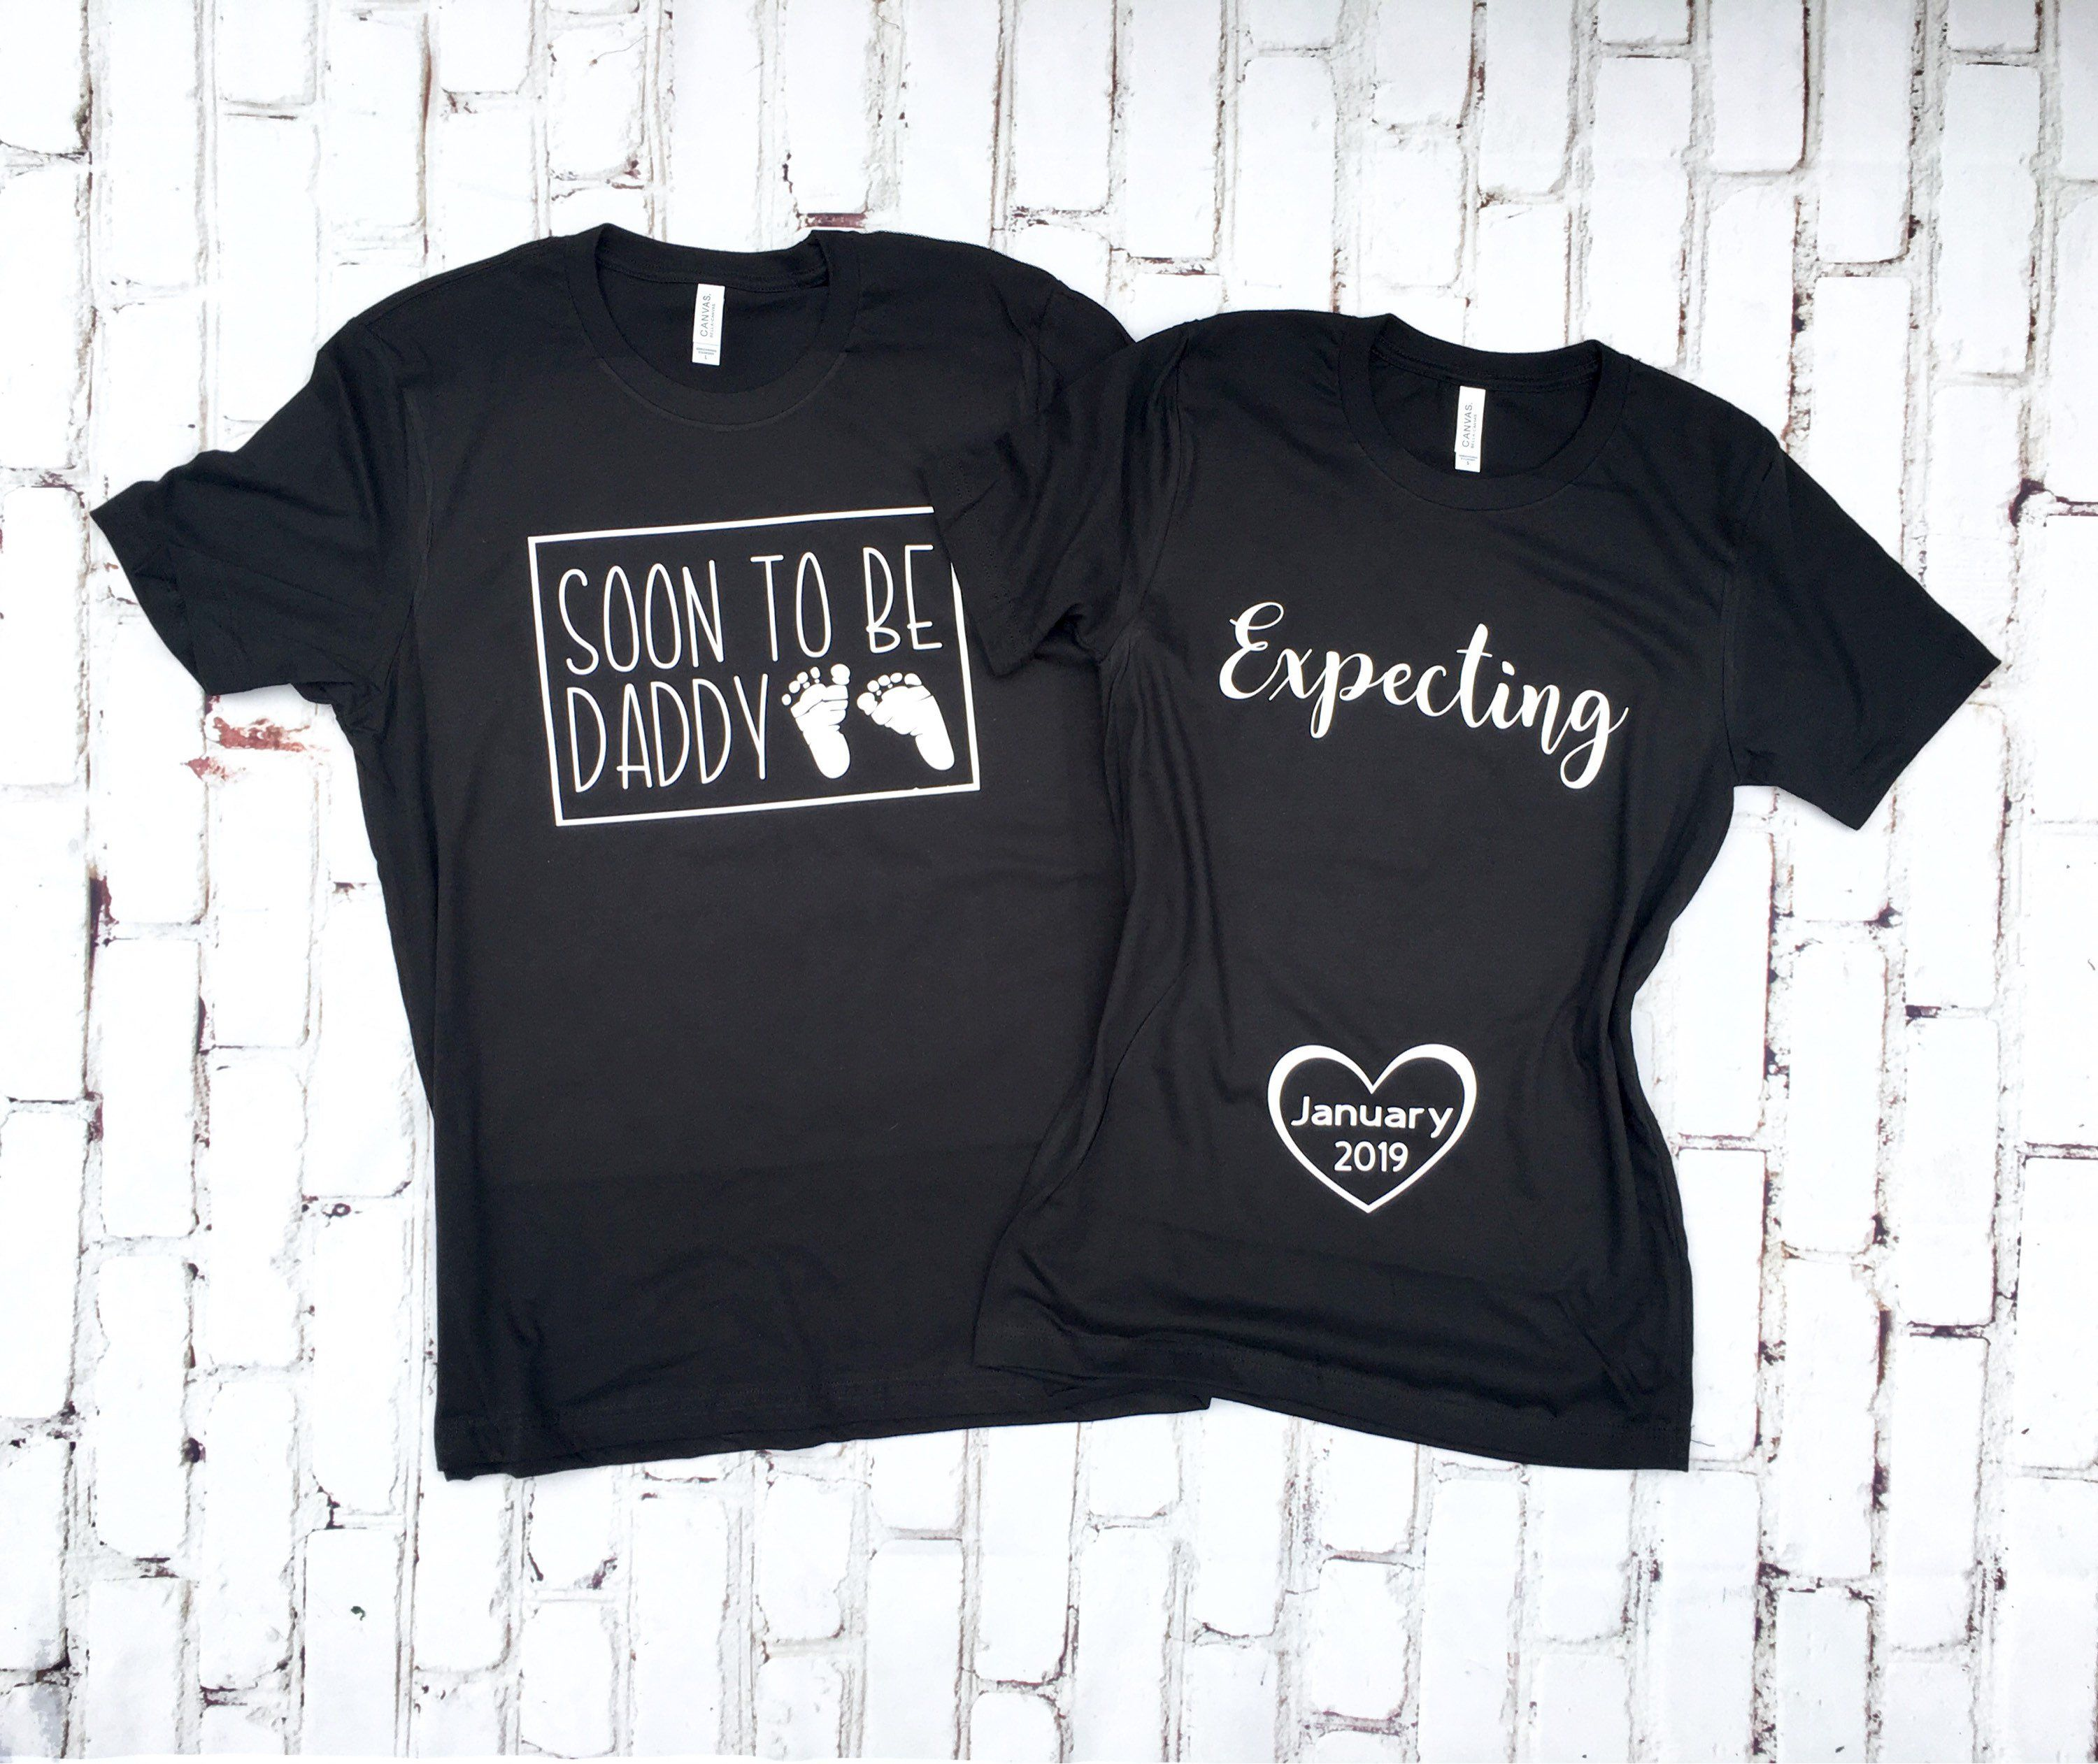 7beb3857 Matching Couple T Shirts Maternity Shirt Expecting Announcement Pregnancy  Reveal New Baby Expectant Mother Dad To Be Baby Loading -SA171-172 |  Inspiring ...